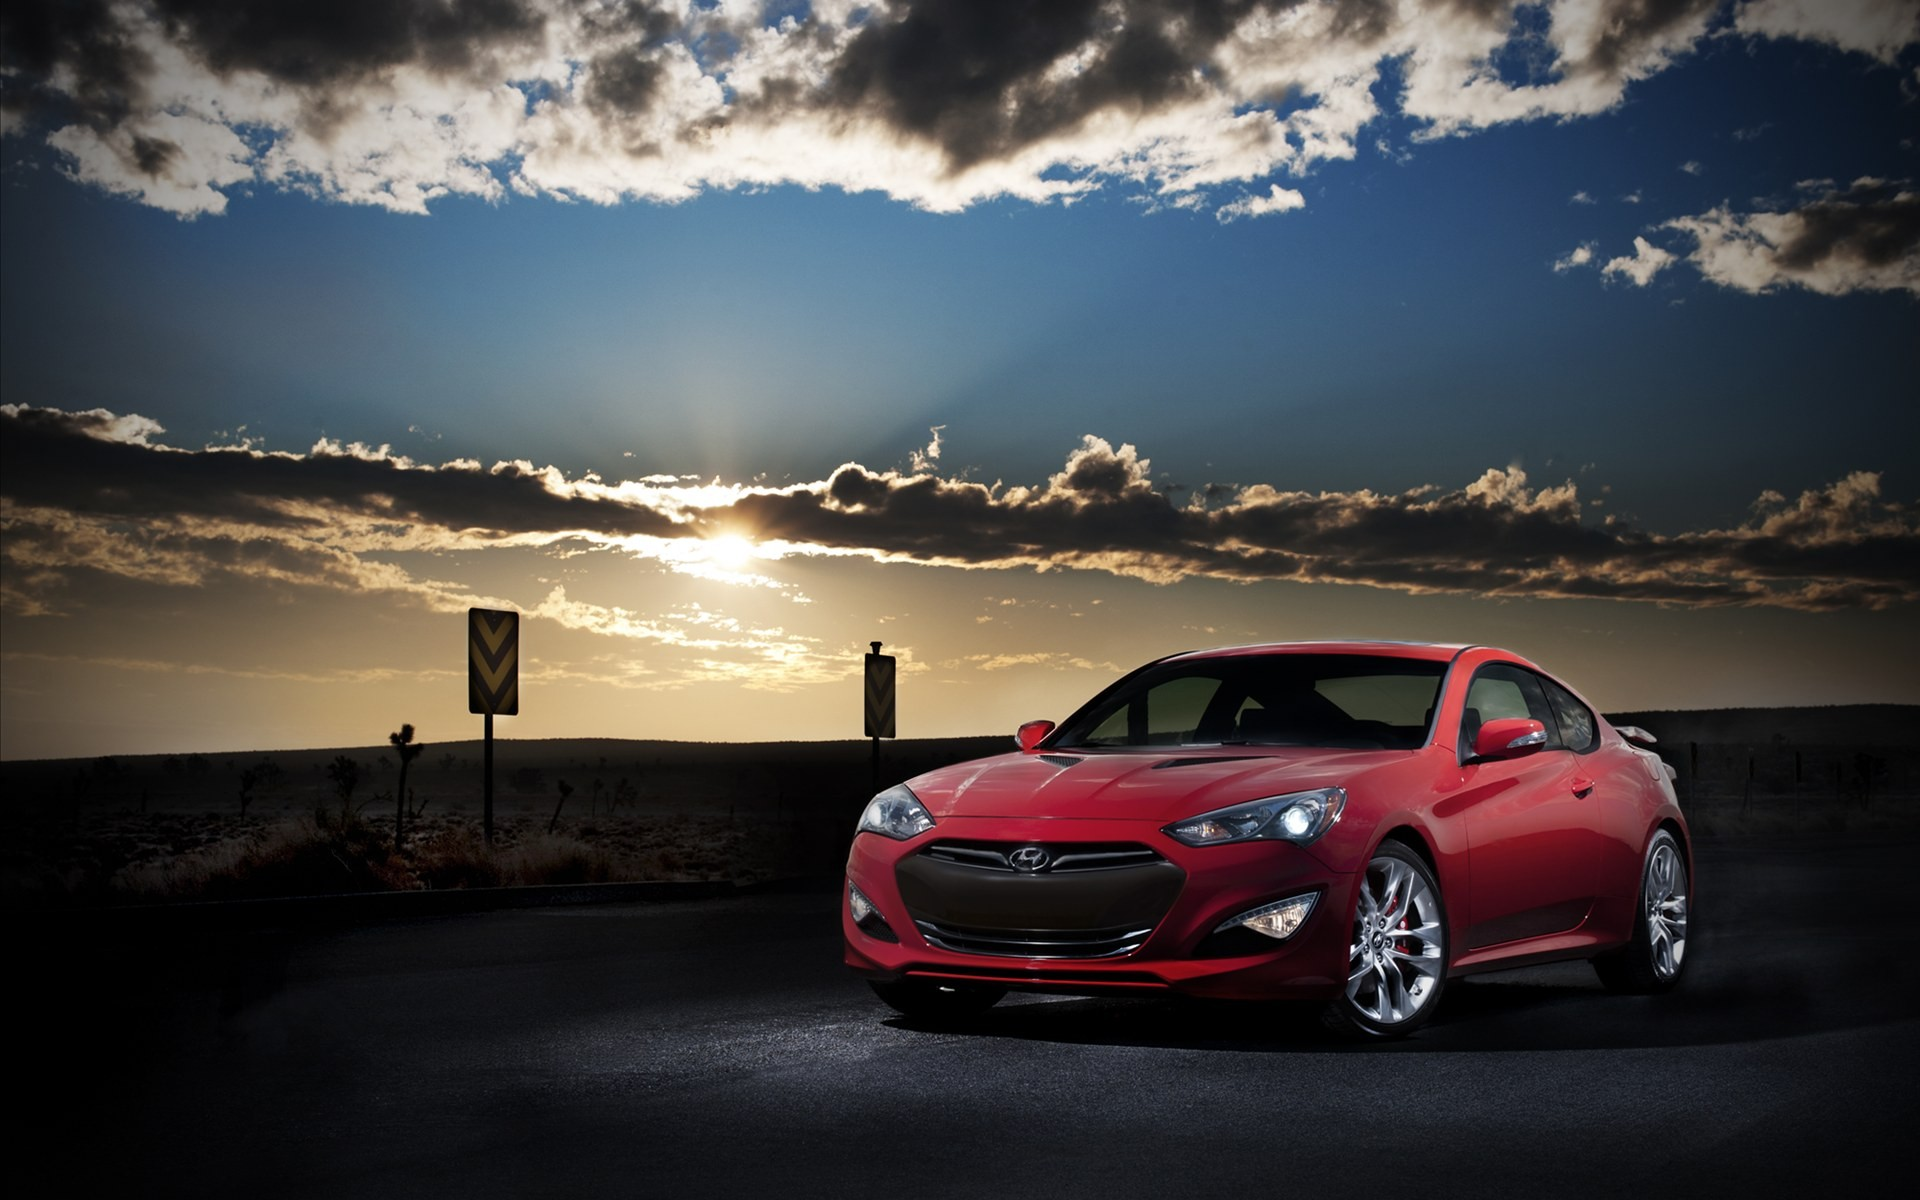 2013 Hyundai Genesis Coupe 2 Wallpaper In 1920x1200 Resolution